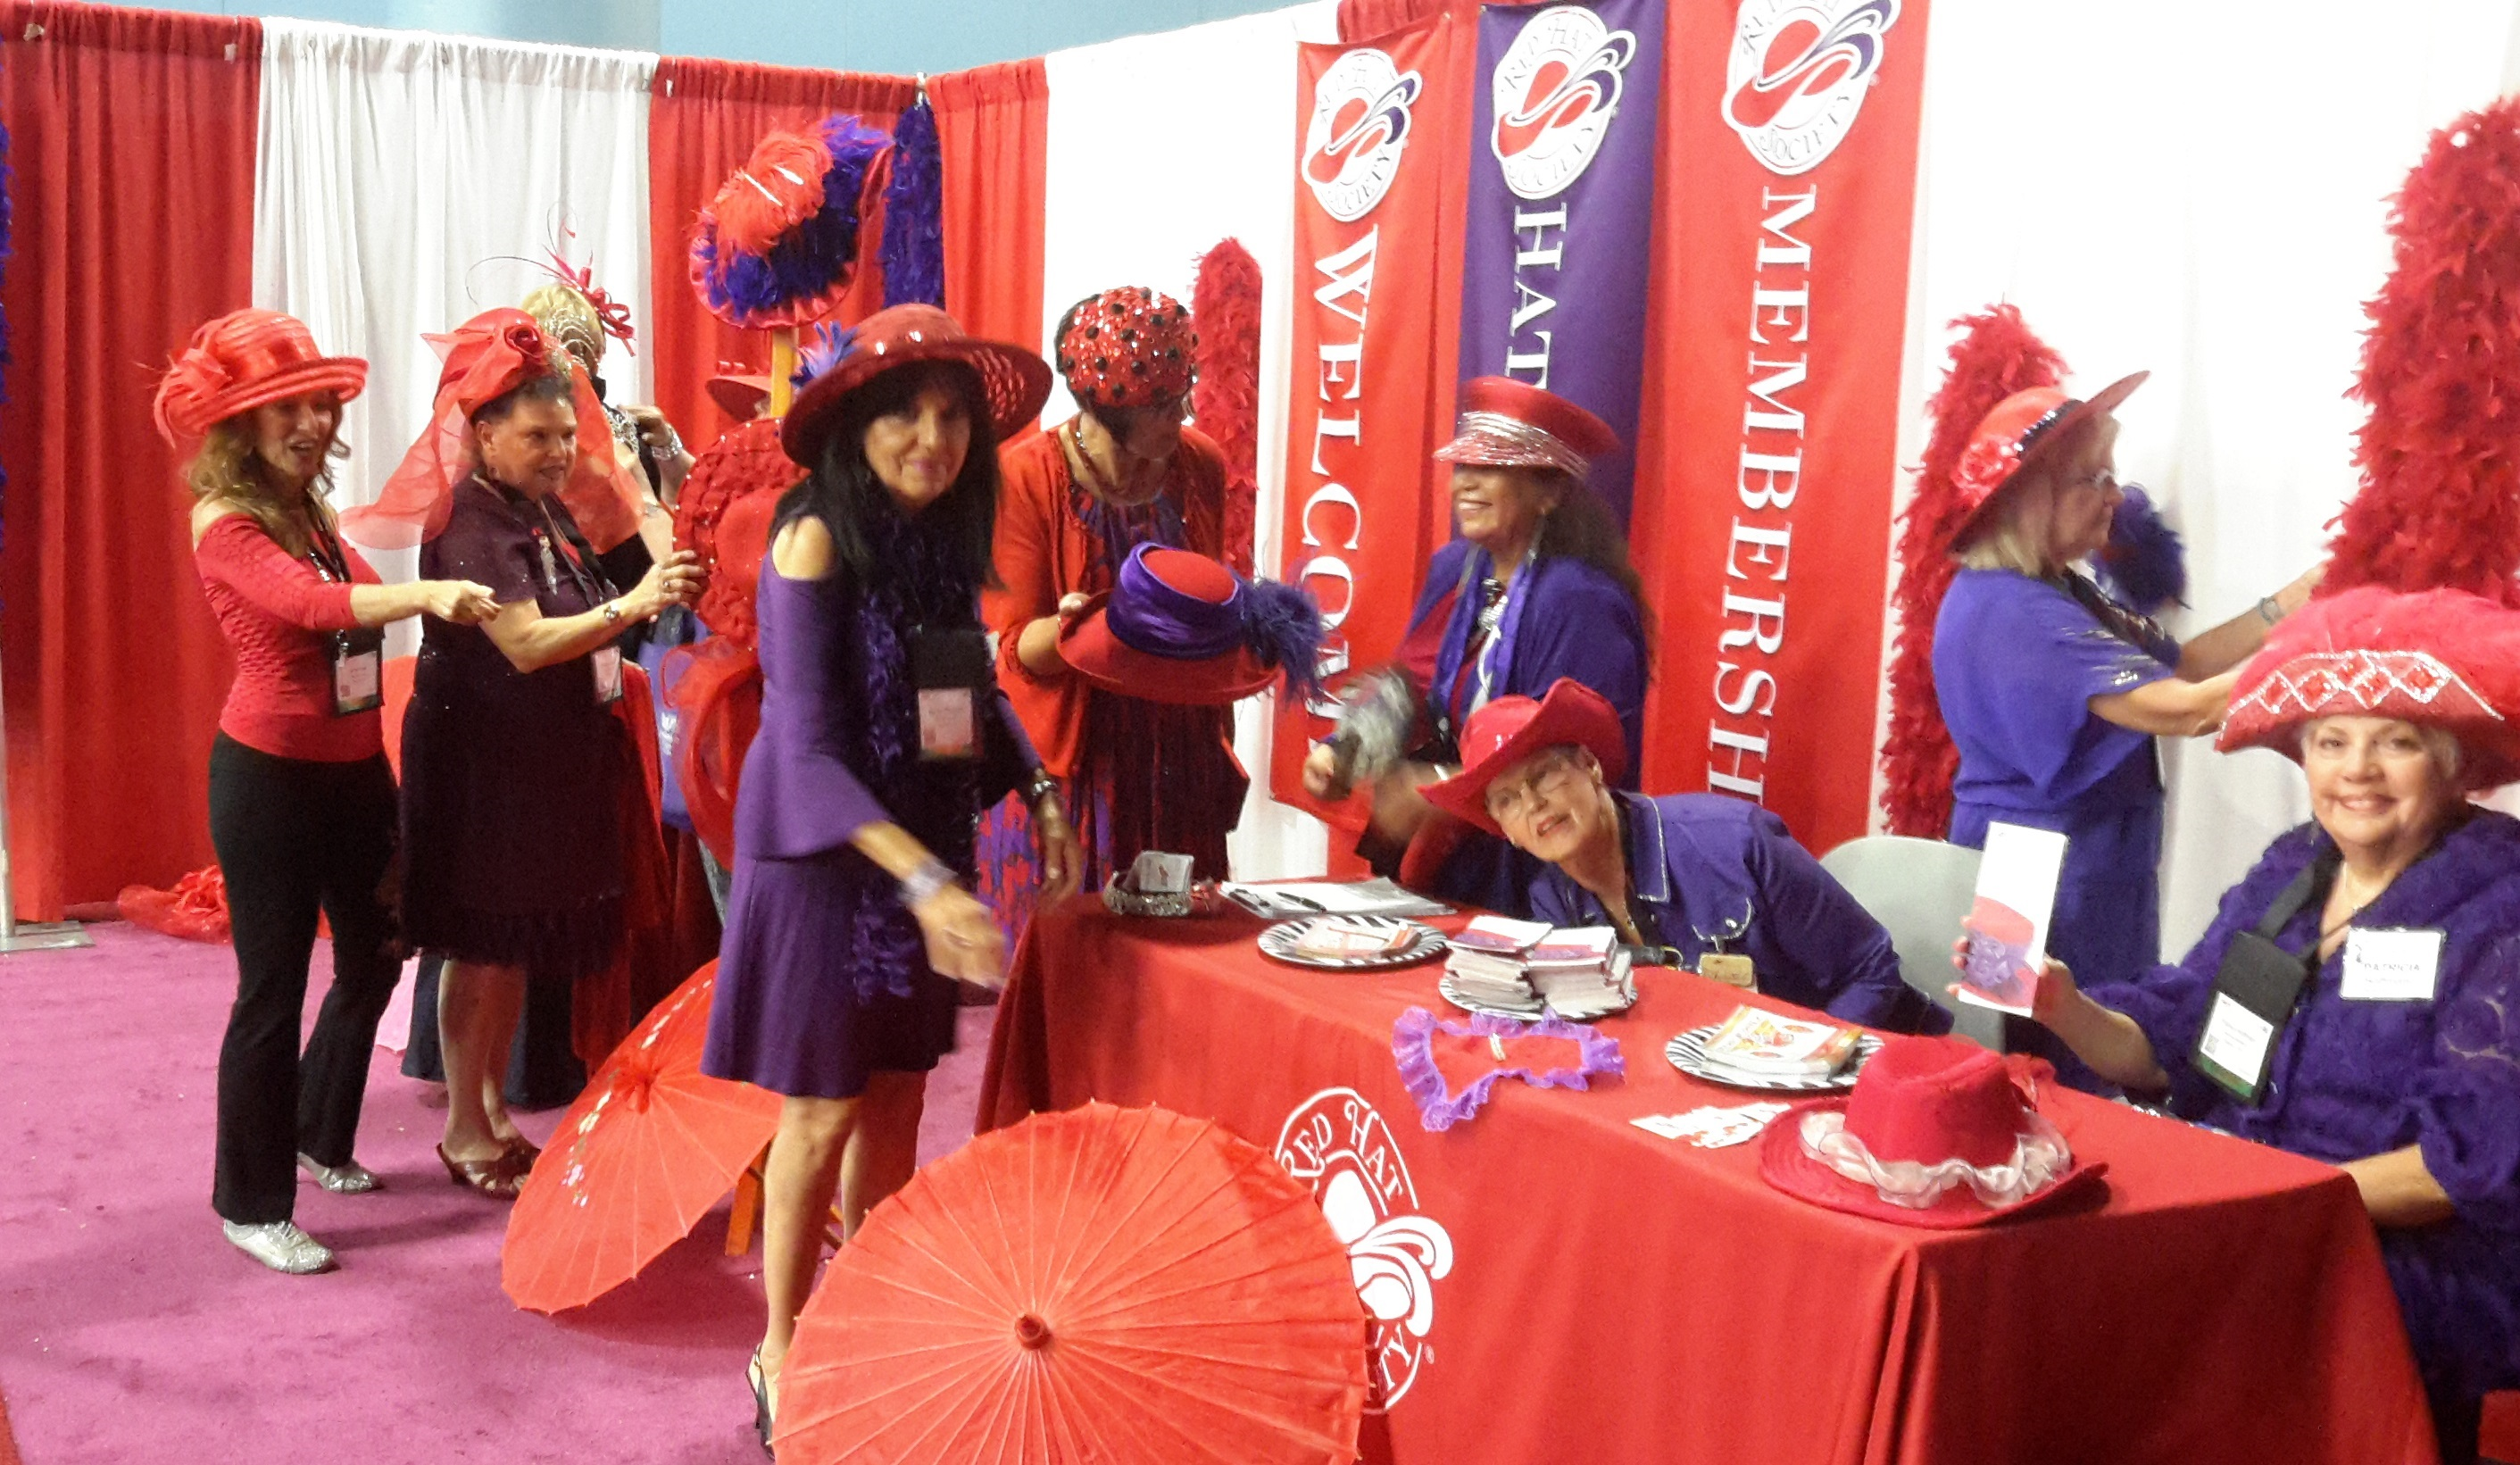 Red Hat Society - Wikiwand